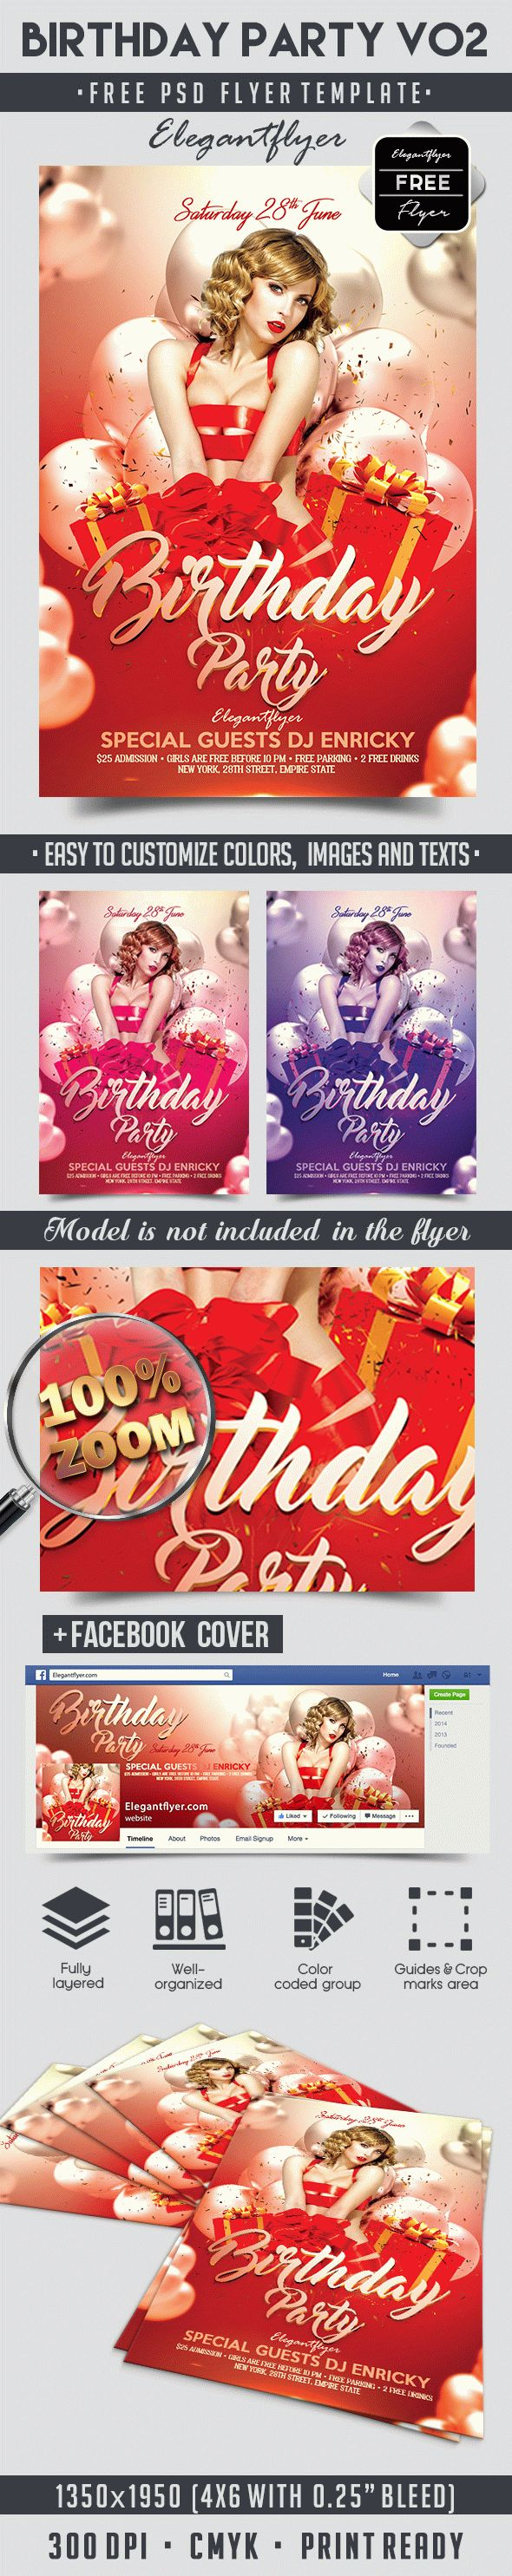 Birthday Party V02 – Free Flyer PSD Template